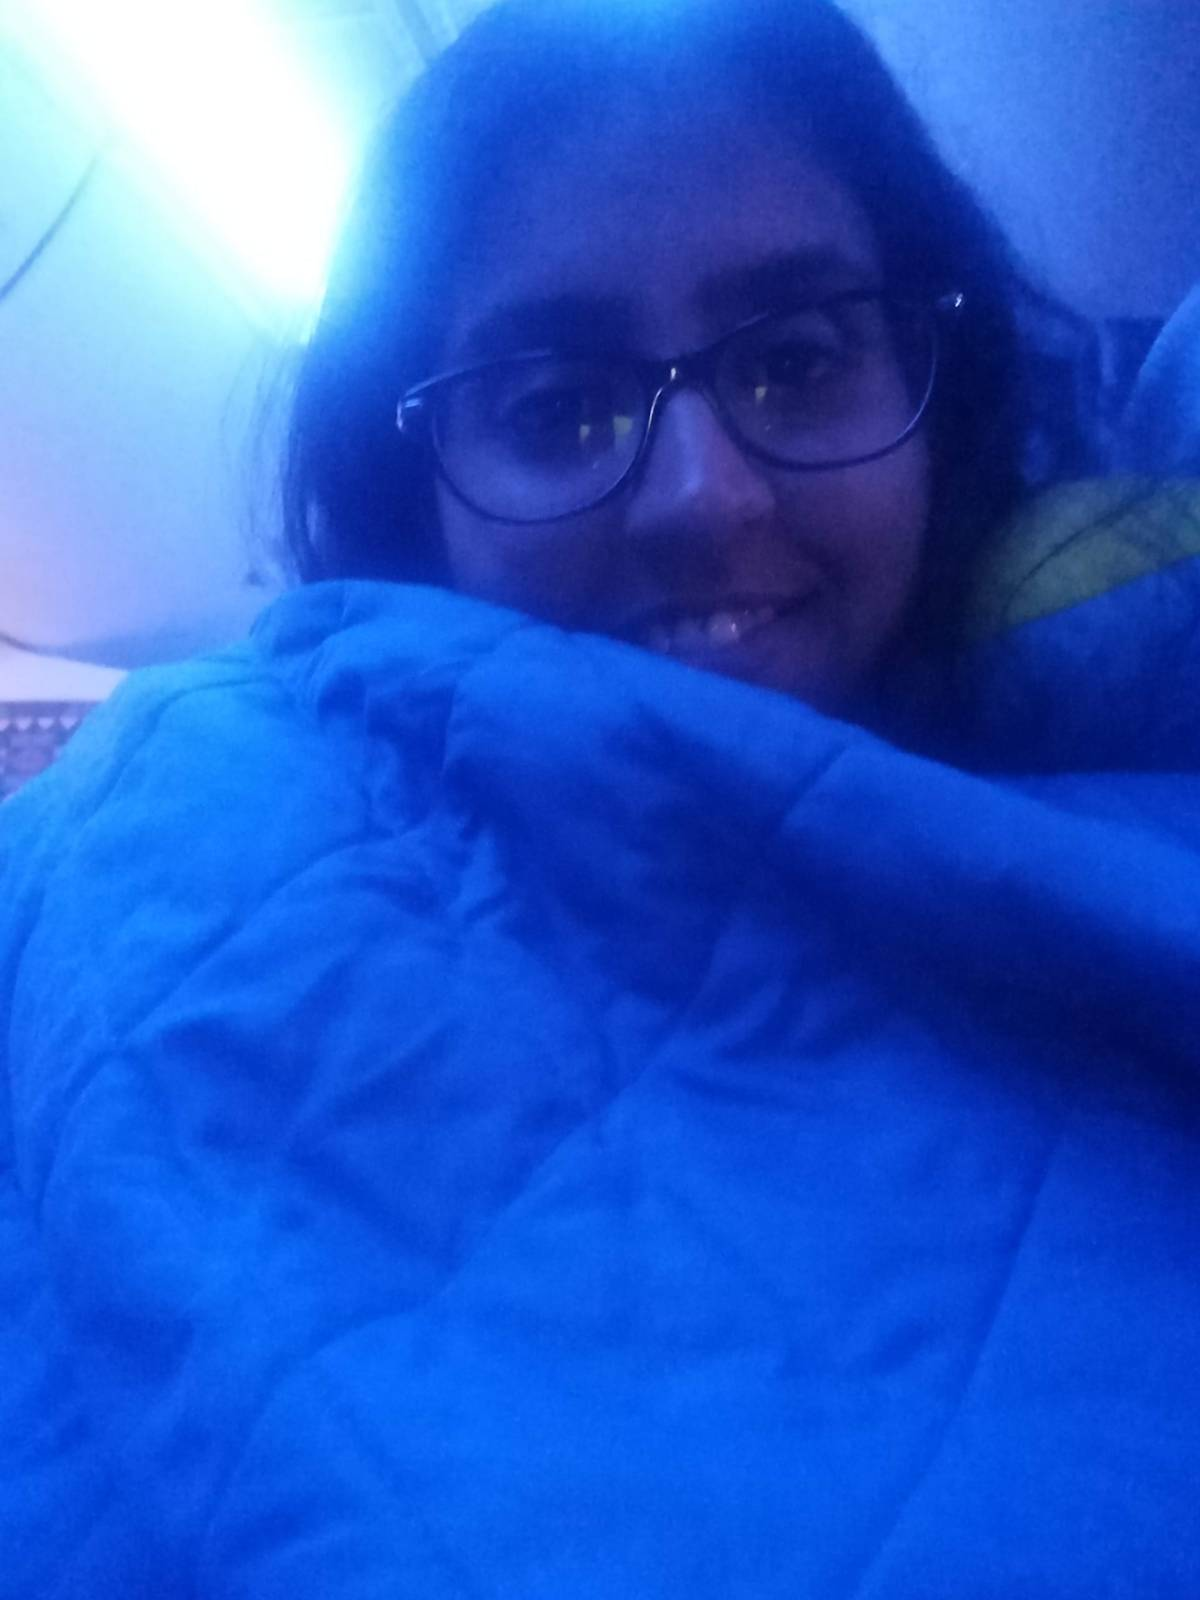 Cozying up in the blanket :D